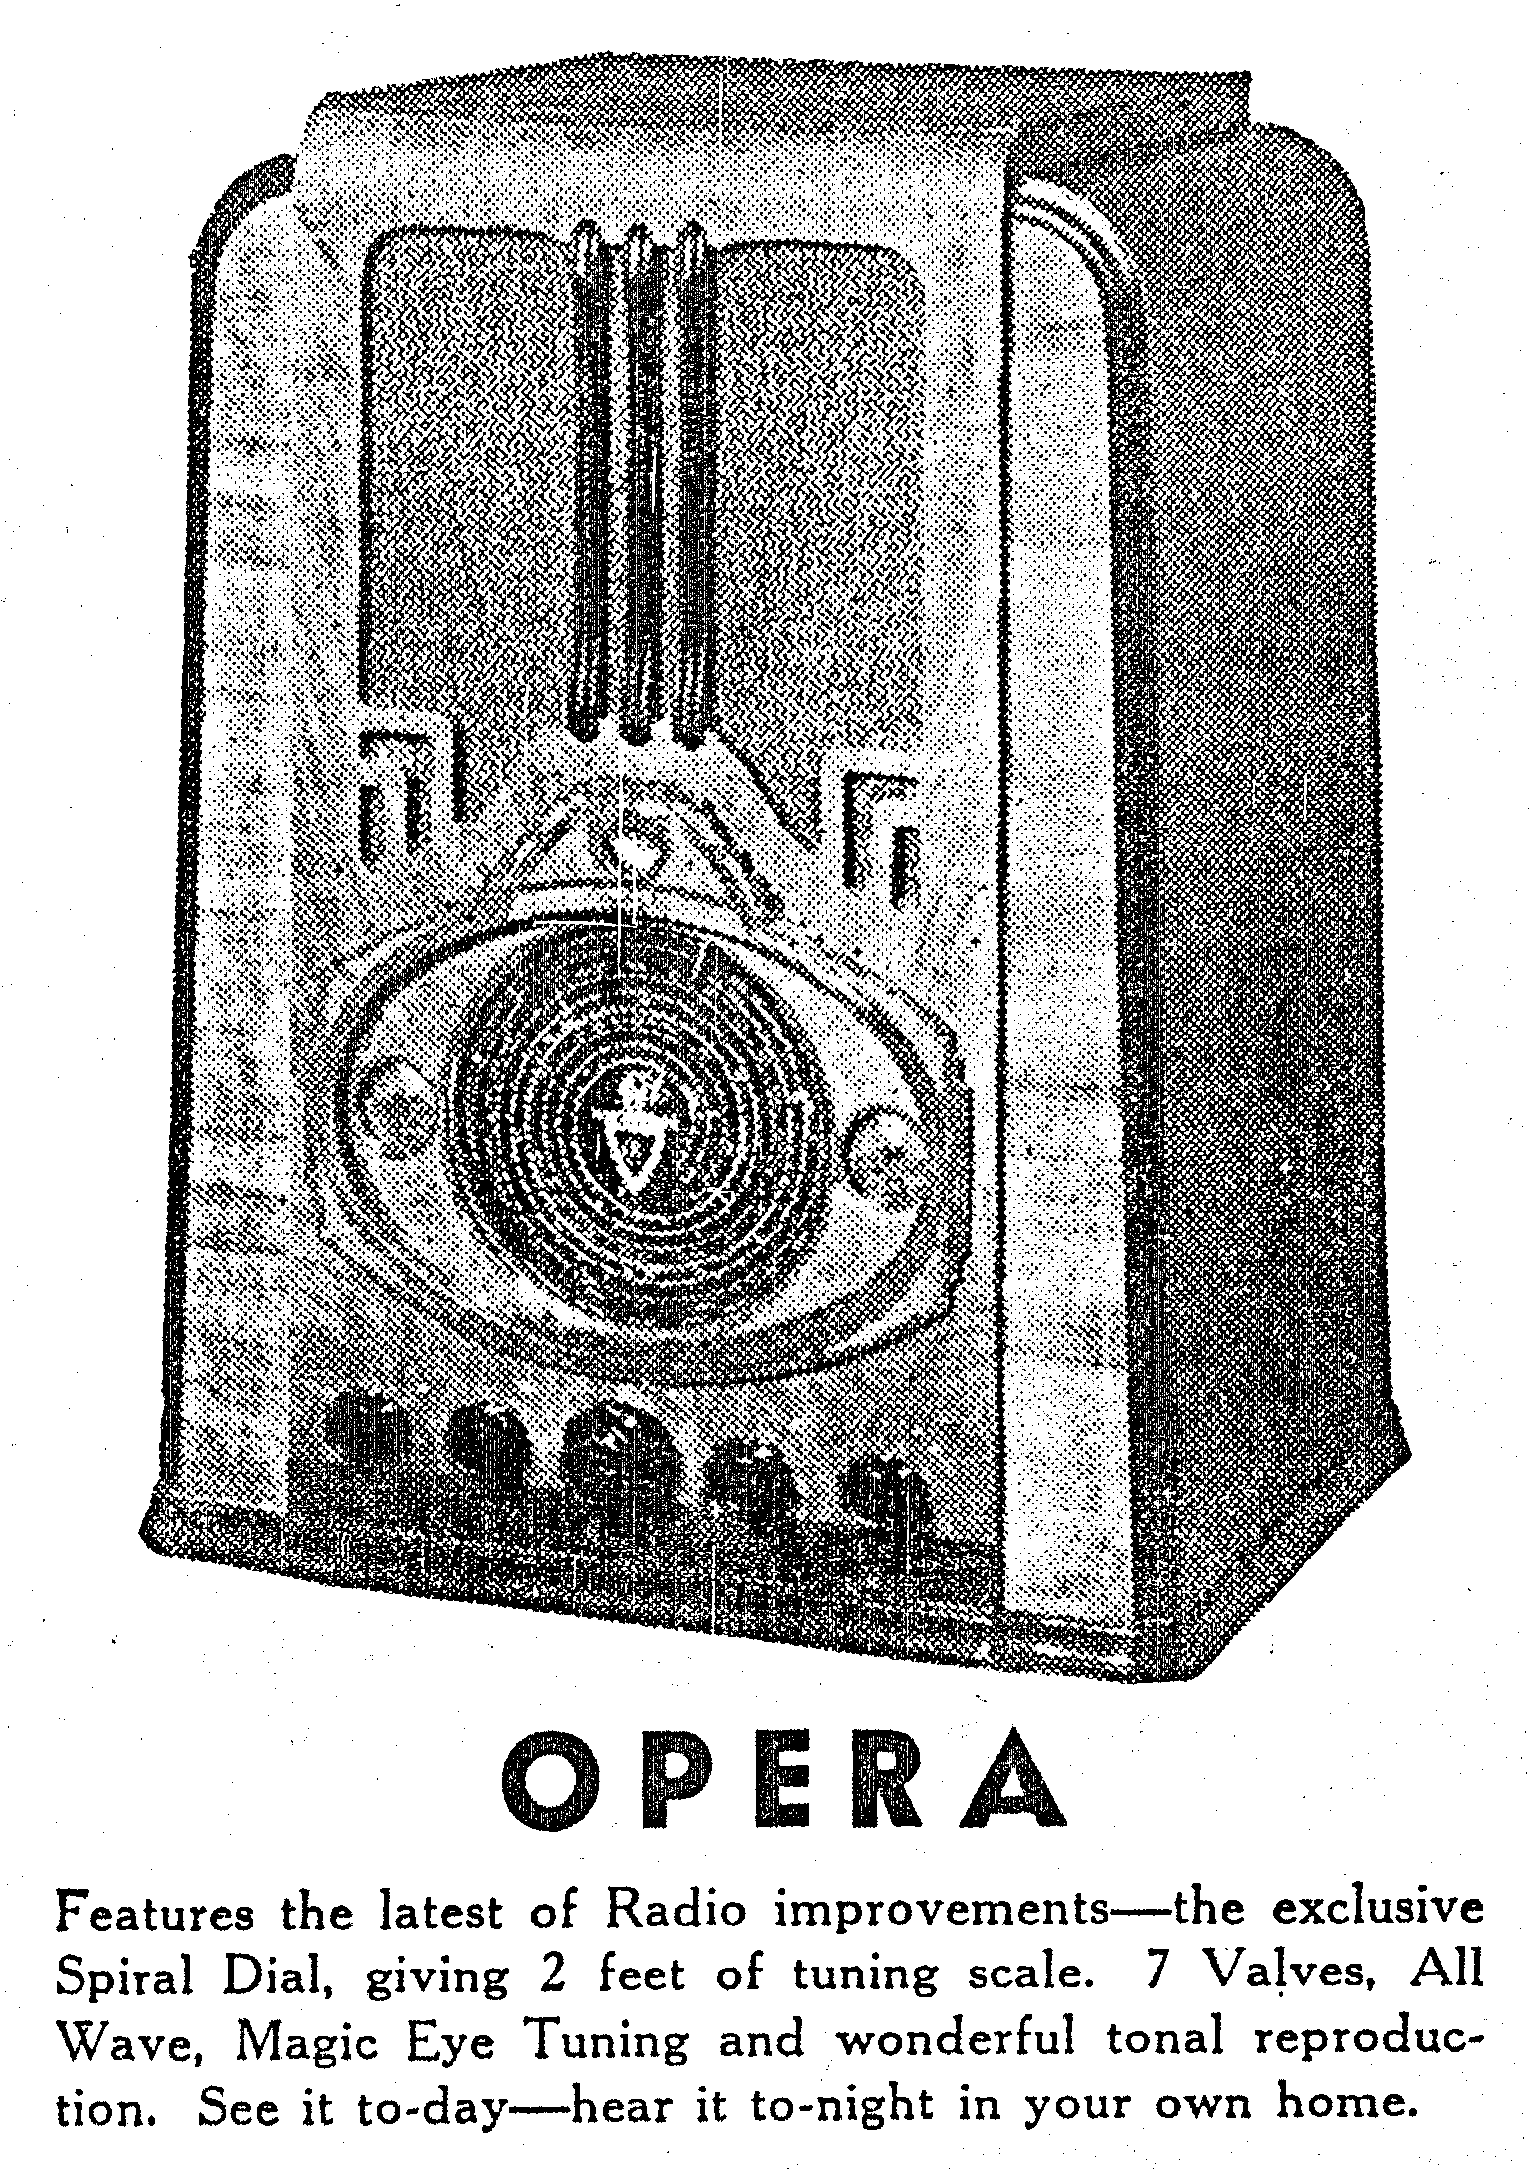 The NZ Vintage Radio Project - Courtenay model 38 'Opera' (1937)